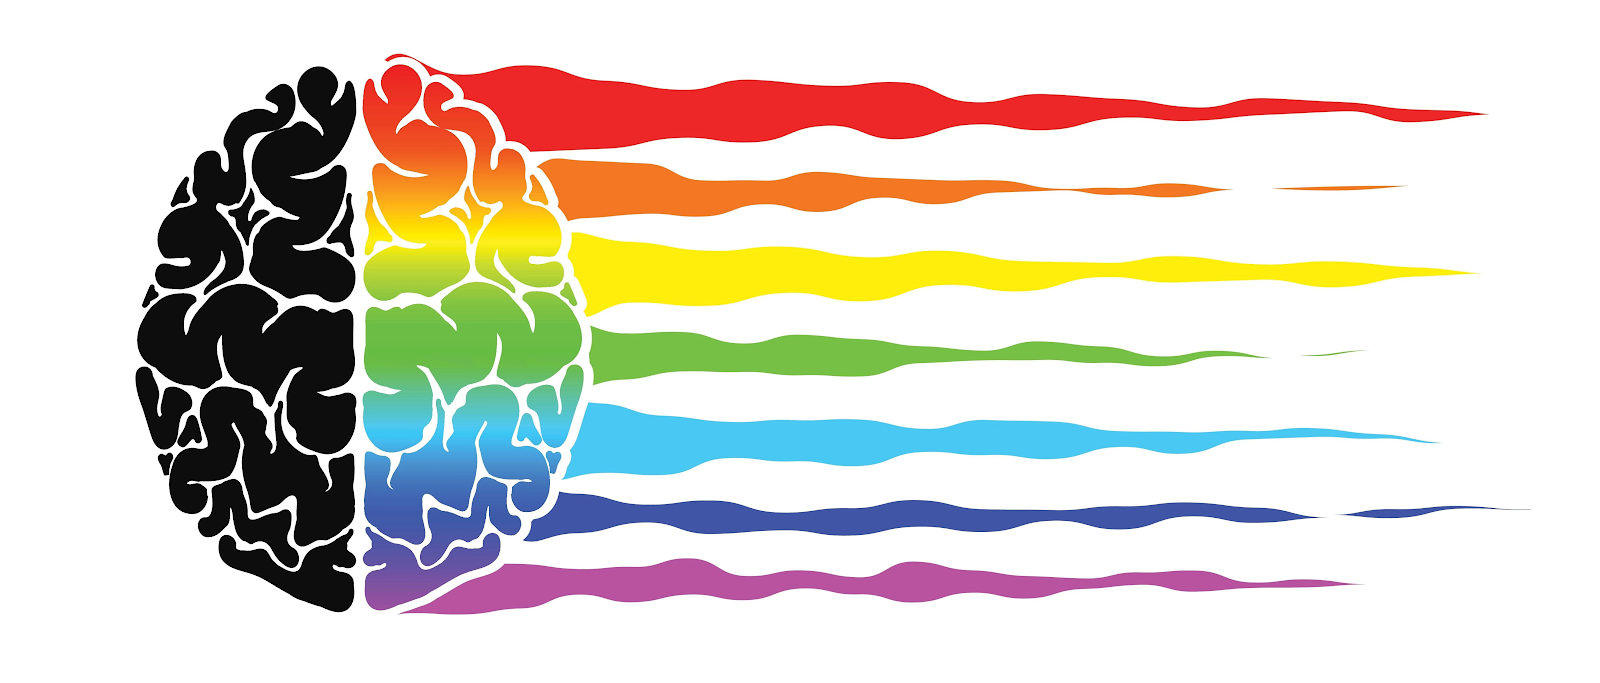 Image of a rainbow brain referring to color psychology in marketing.